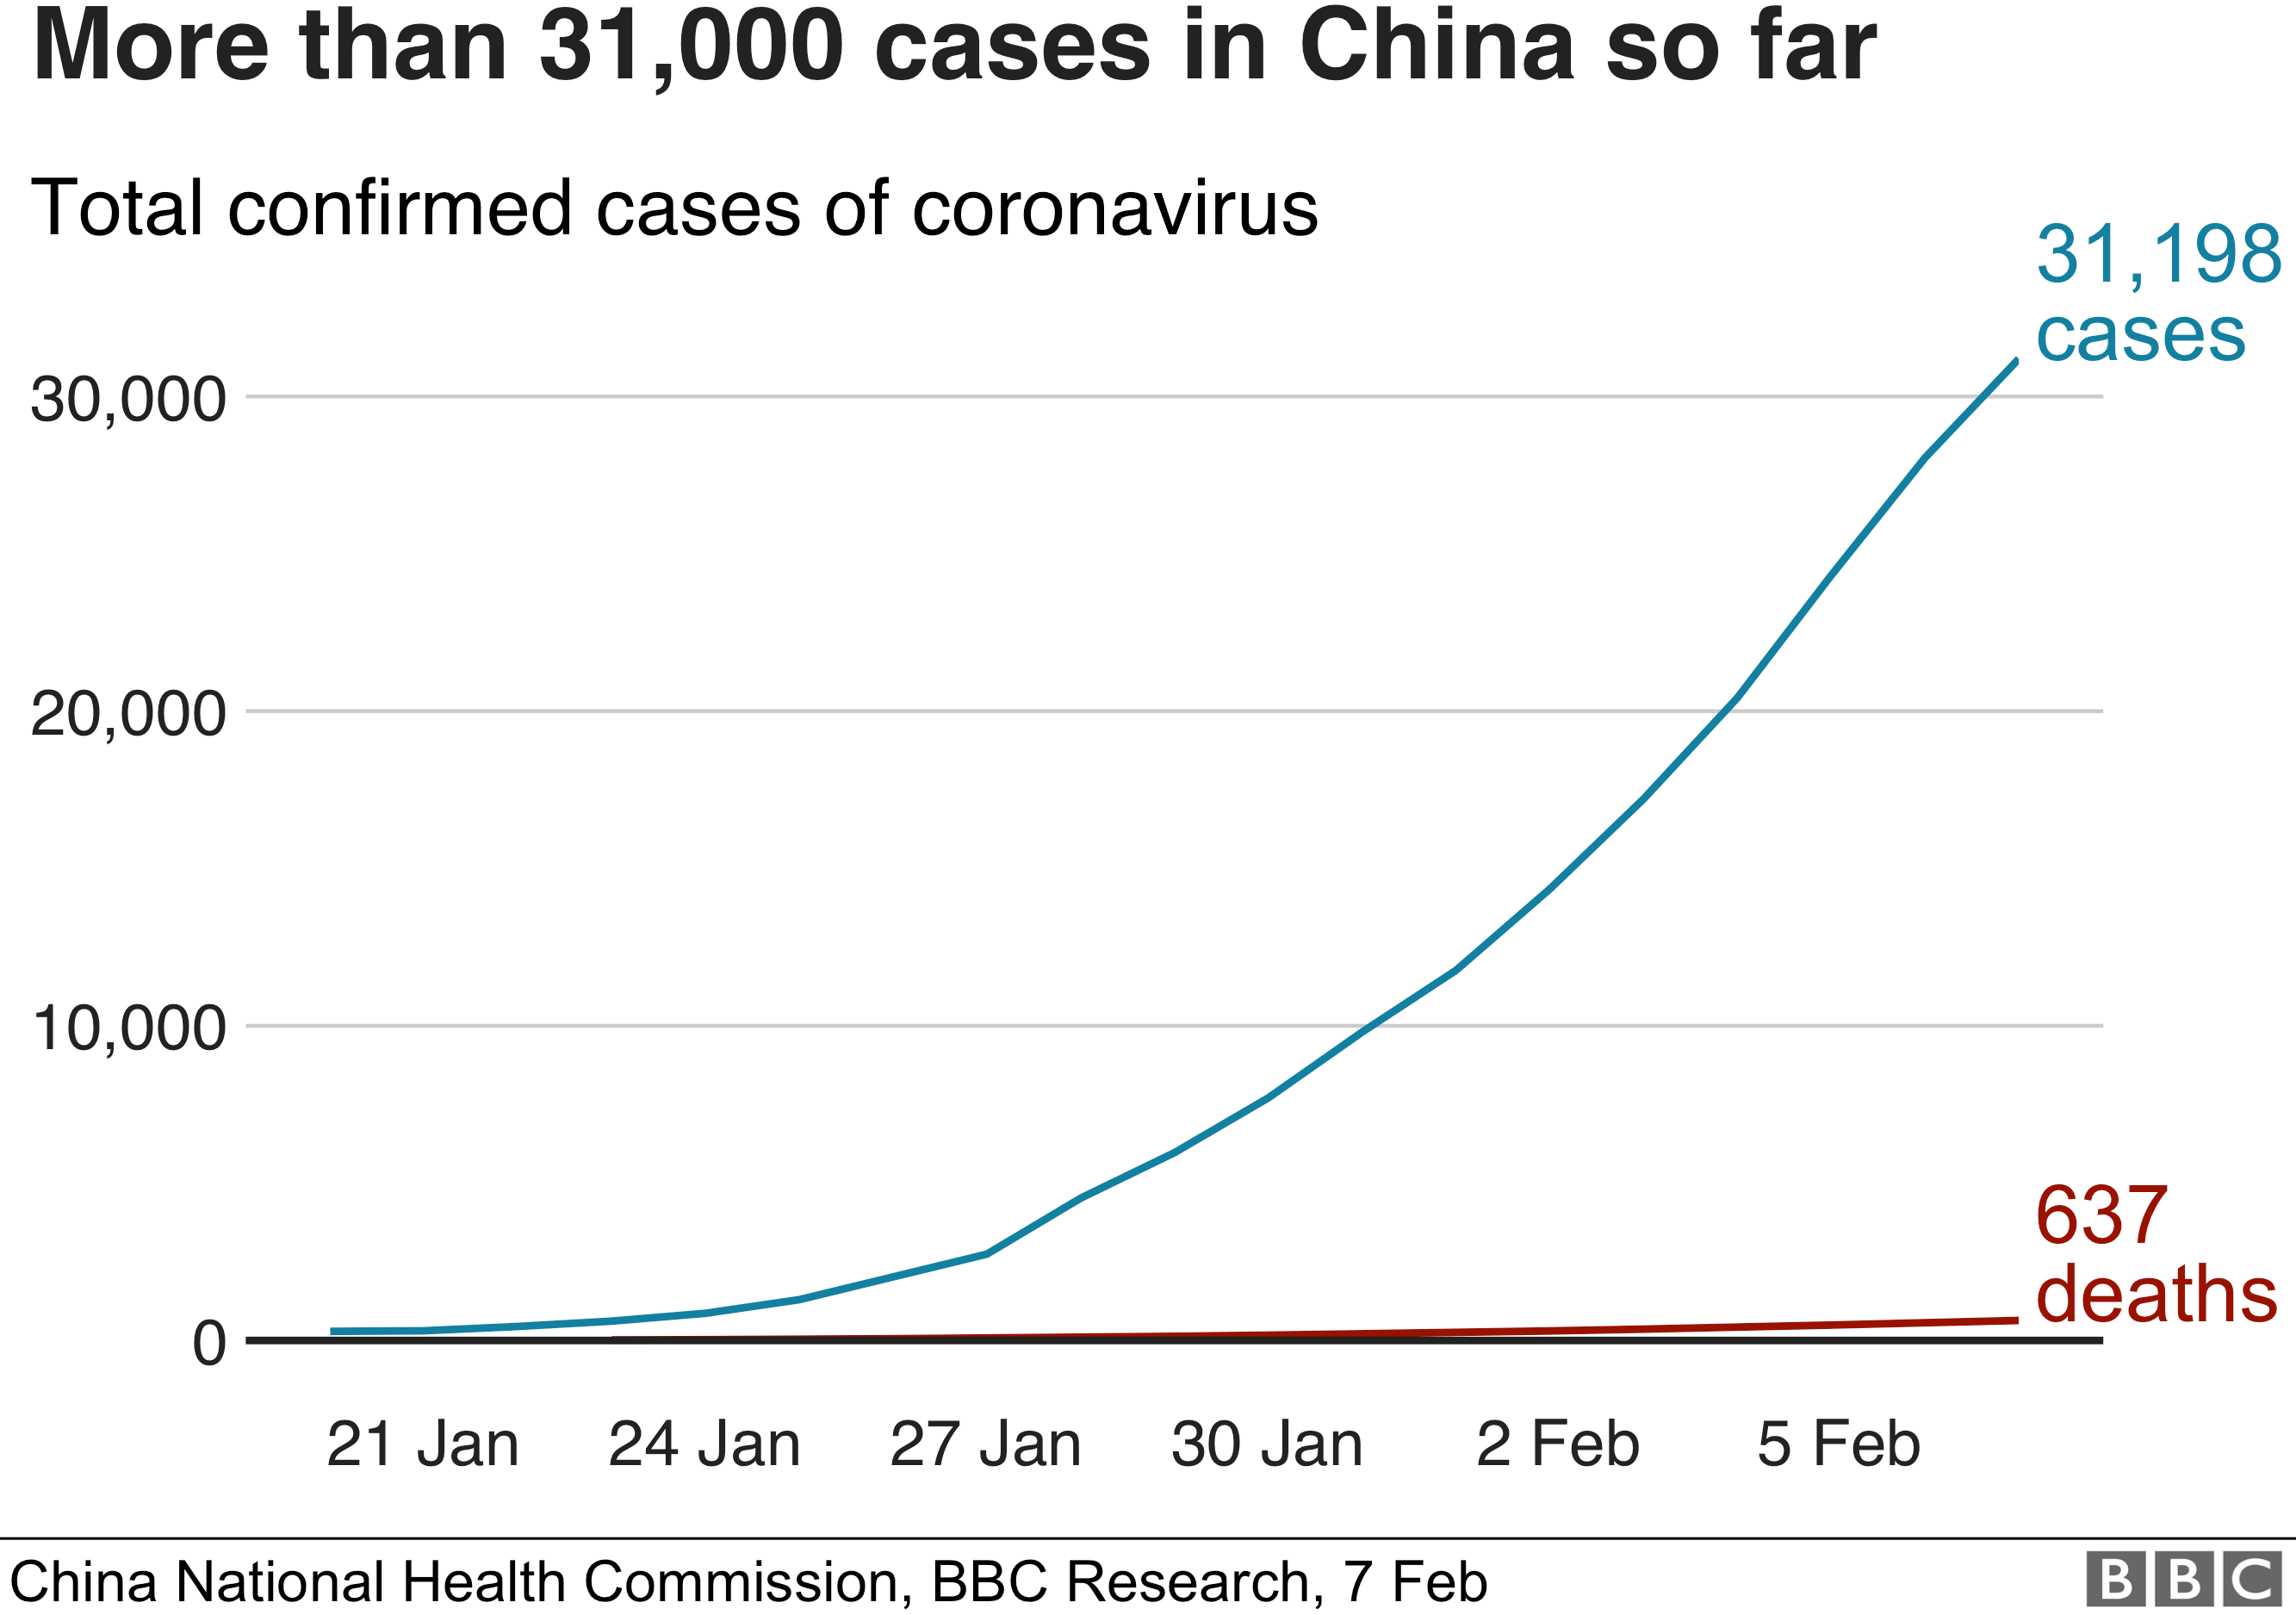 Graphic showing the number of cases in China so far